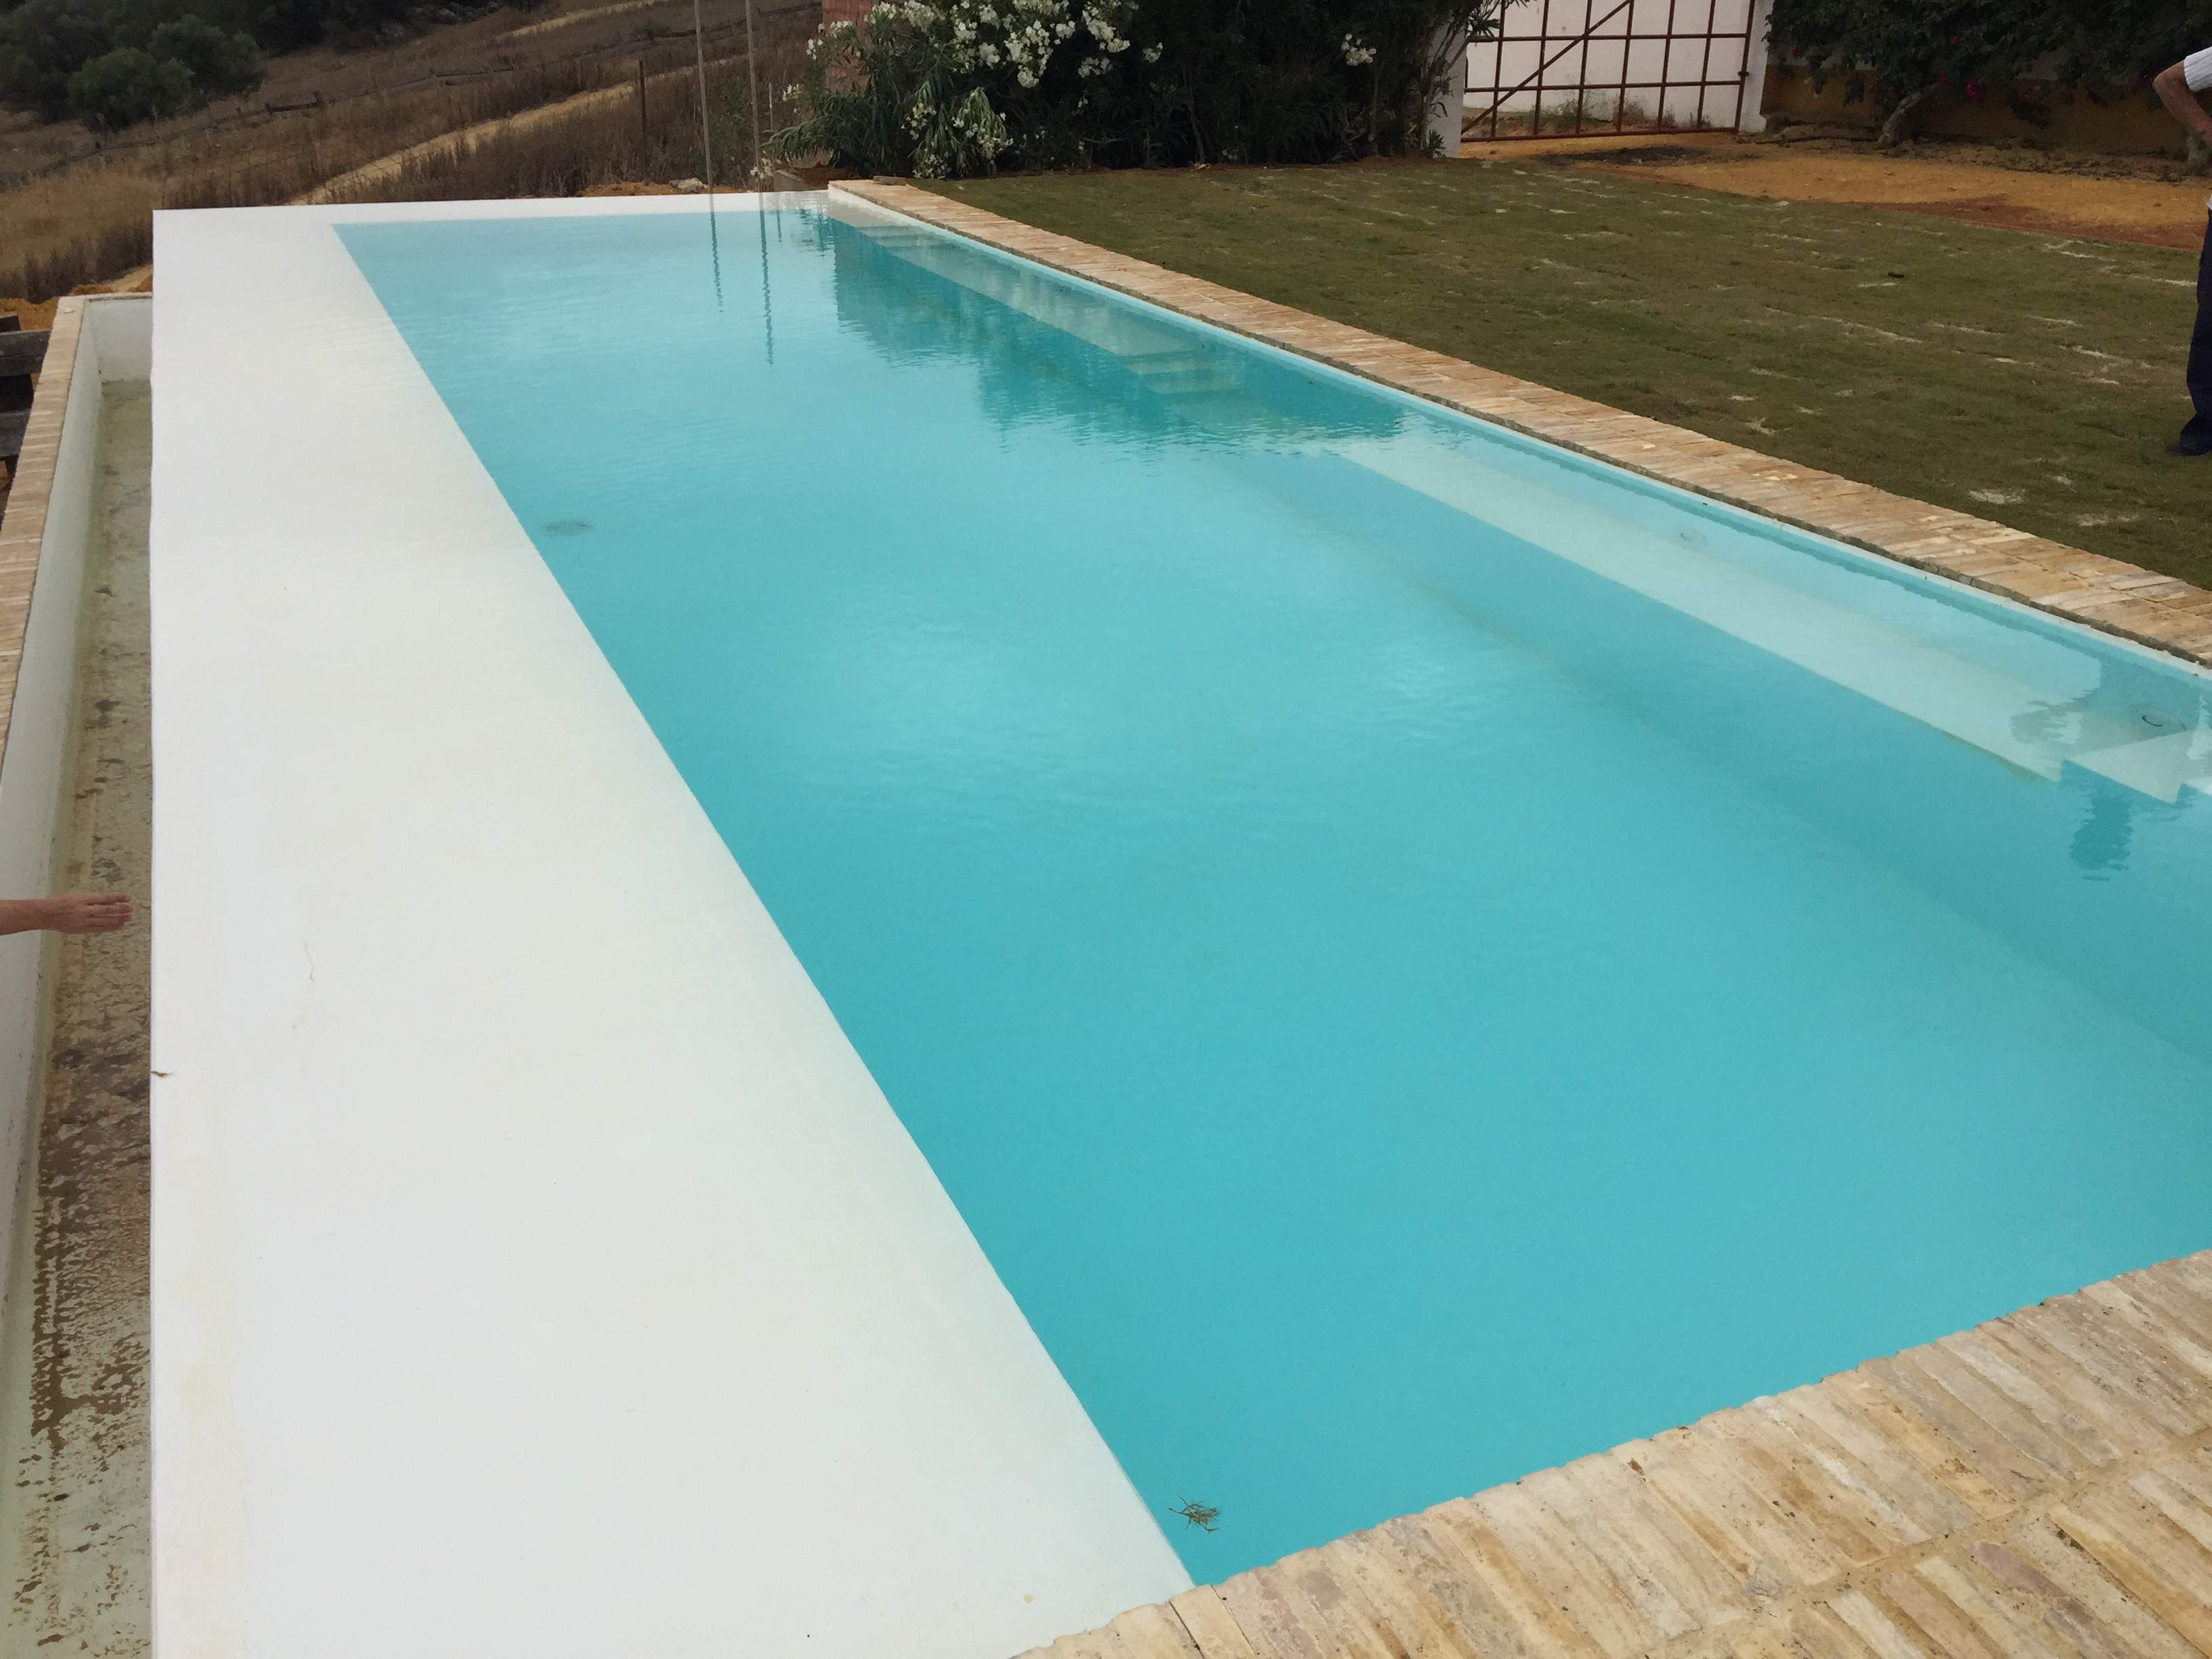 Rectangular infinity pool 12 x 3 5 piscinia - Piscina hinchable con asientos ...